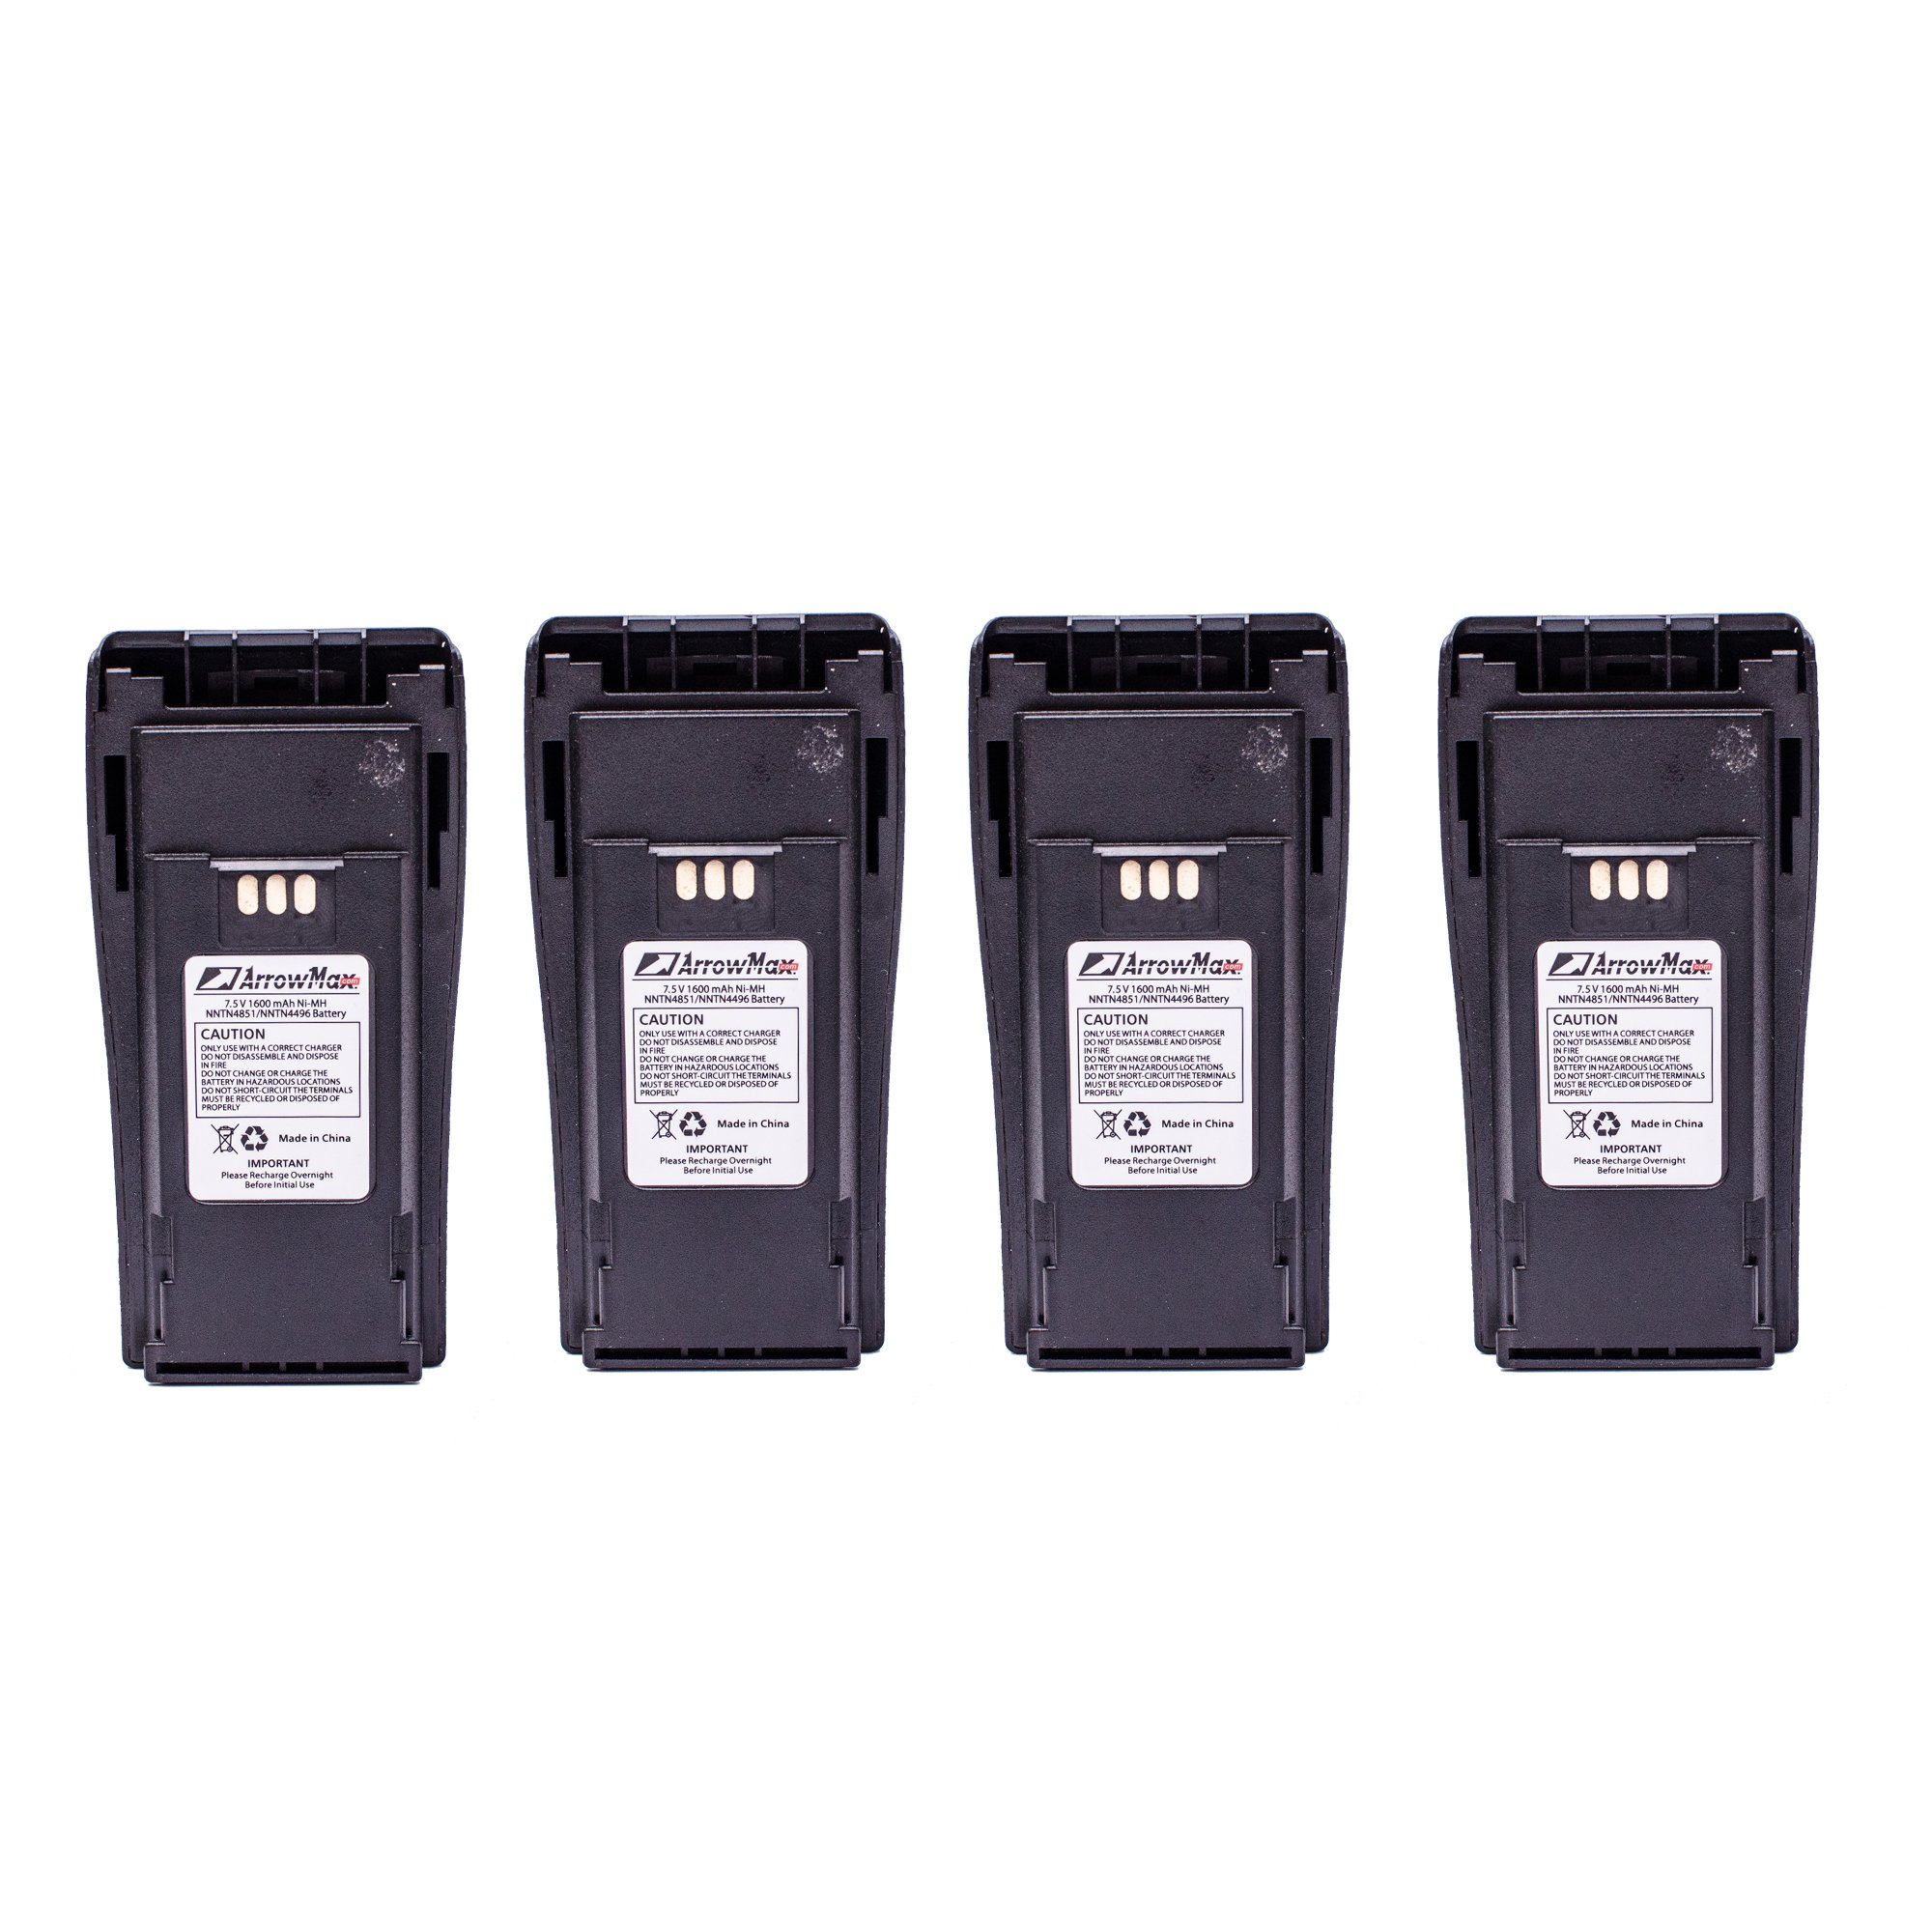 4 Pack Arrowmax AMCM4496-1600-D 1600mAh NNTN4496 NNTN4497 Battery for Motorola CP140 CP160 CP-200 CP200 CP200XLS